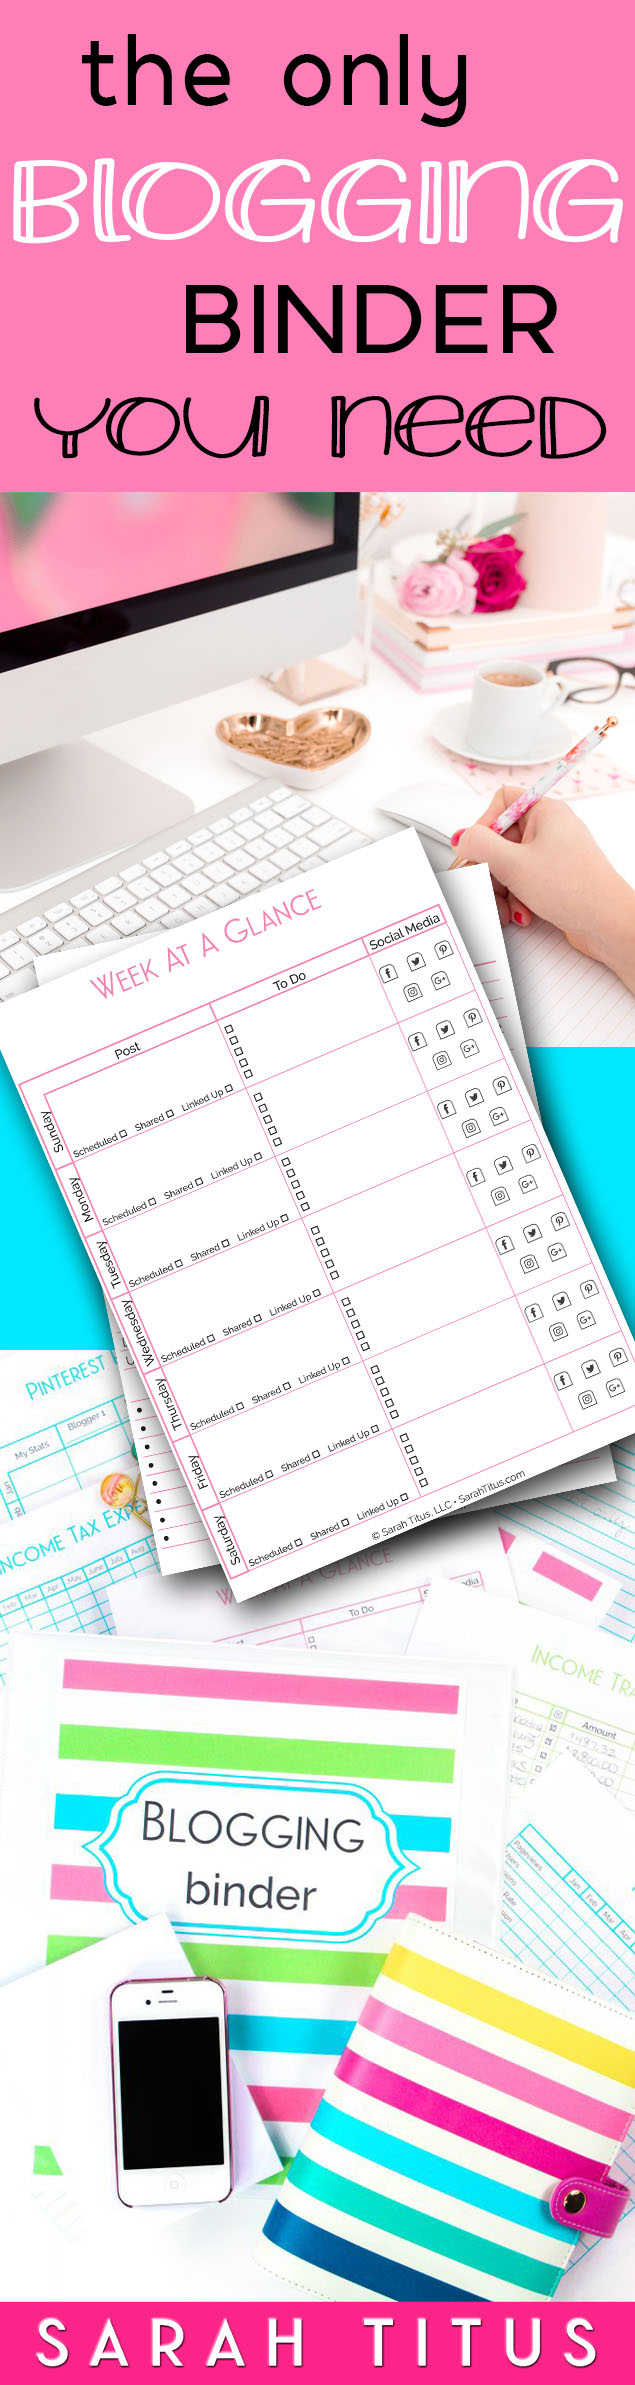 I've used many blog planners, but none of them really did what I wanted them to do. That is, until I created my OWN. At 180+ pages, this is the one blogging binder you need! #bloggingbinder #blogbinder #blogprintables #bloggingprintables #blogplanner #bloggingplanner